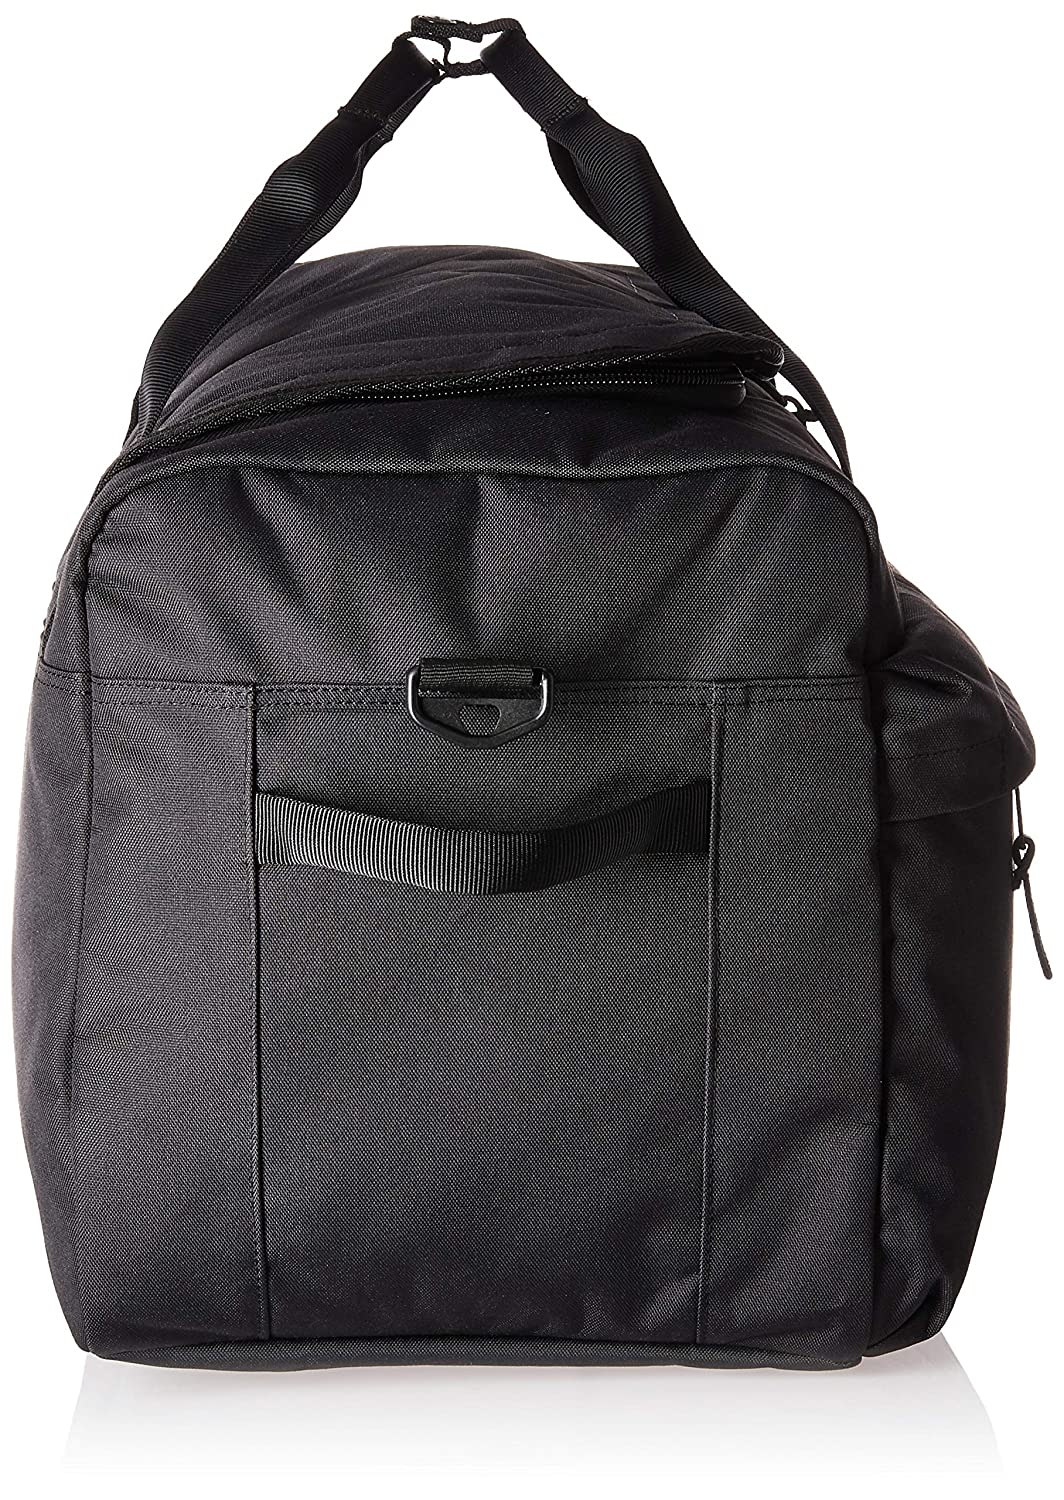 Black Outfitter Travel Duffle Herschel Supply Co One Size